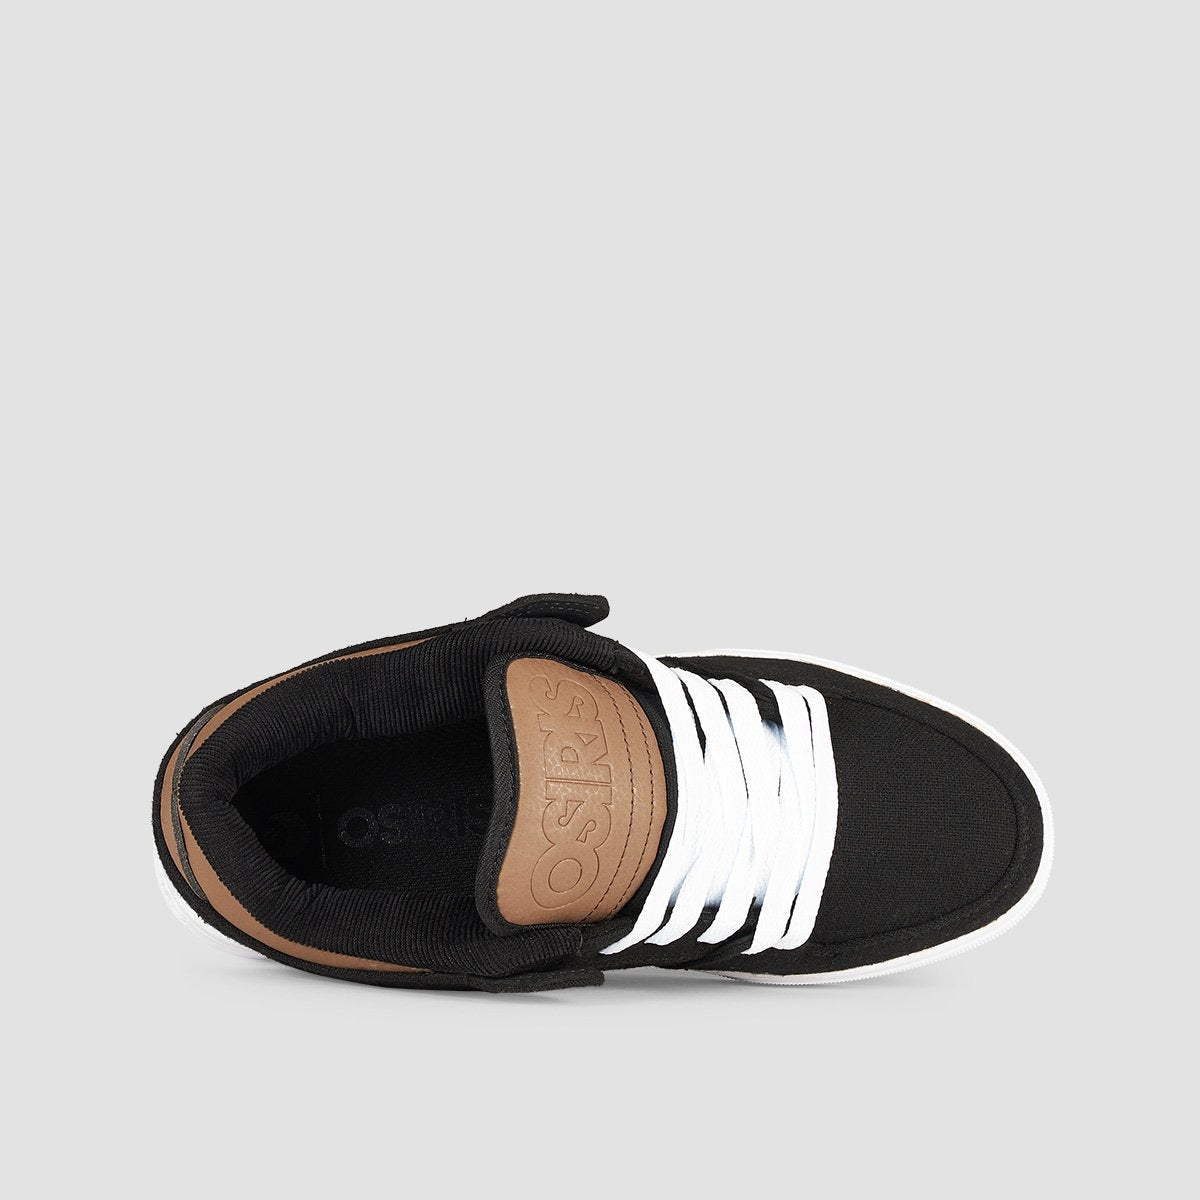 Osiris Protocol Black/Wool - Footwear